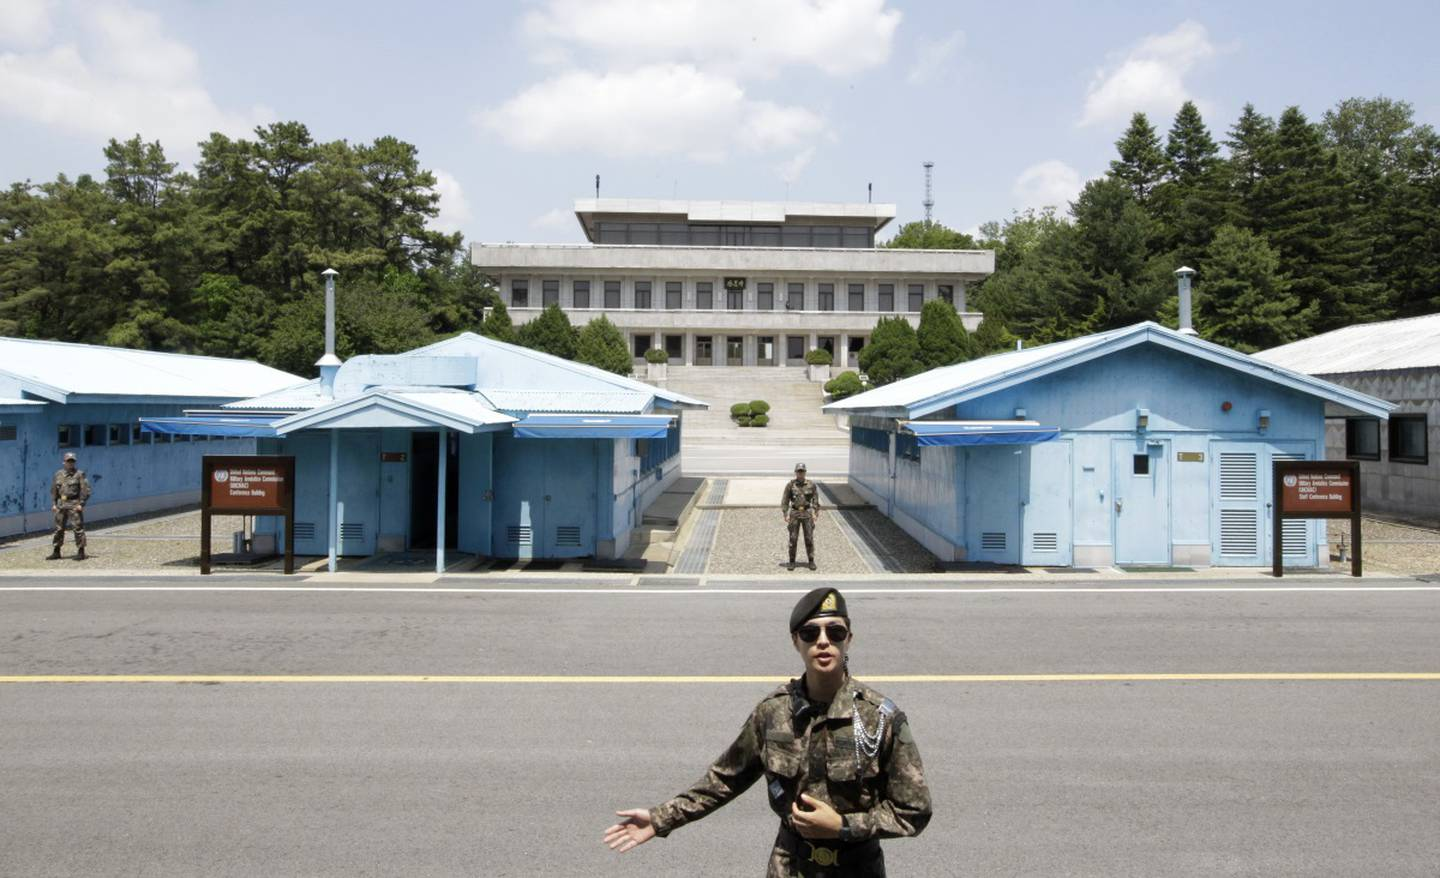 A South Korean soldier gestures during a press tour at the Panmunjom in the Demilitarized Zone, South Korea.